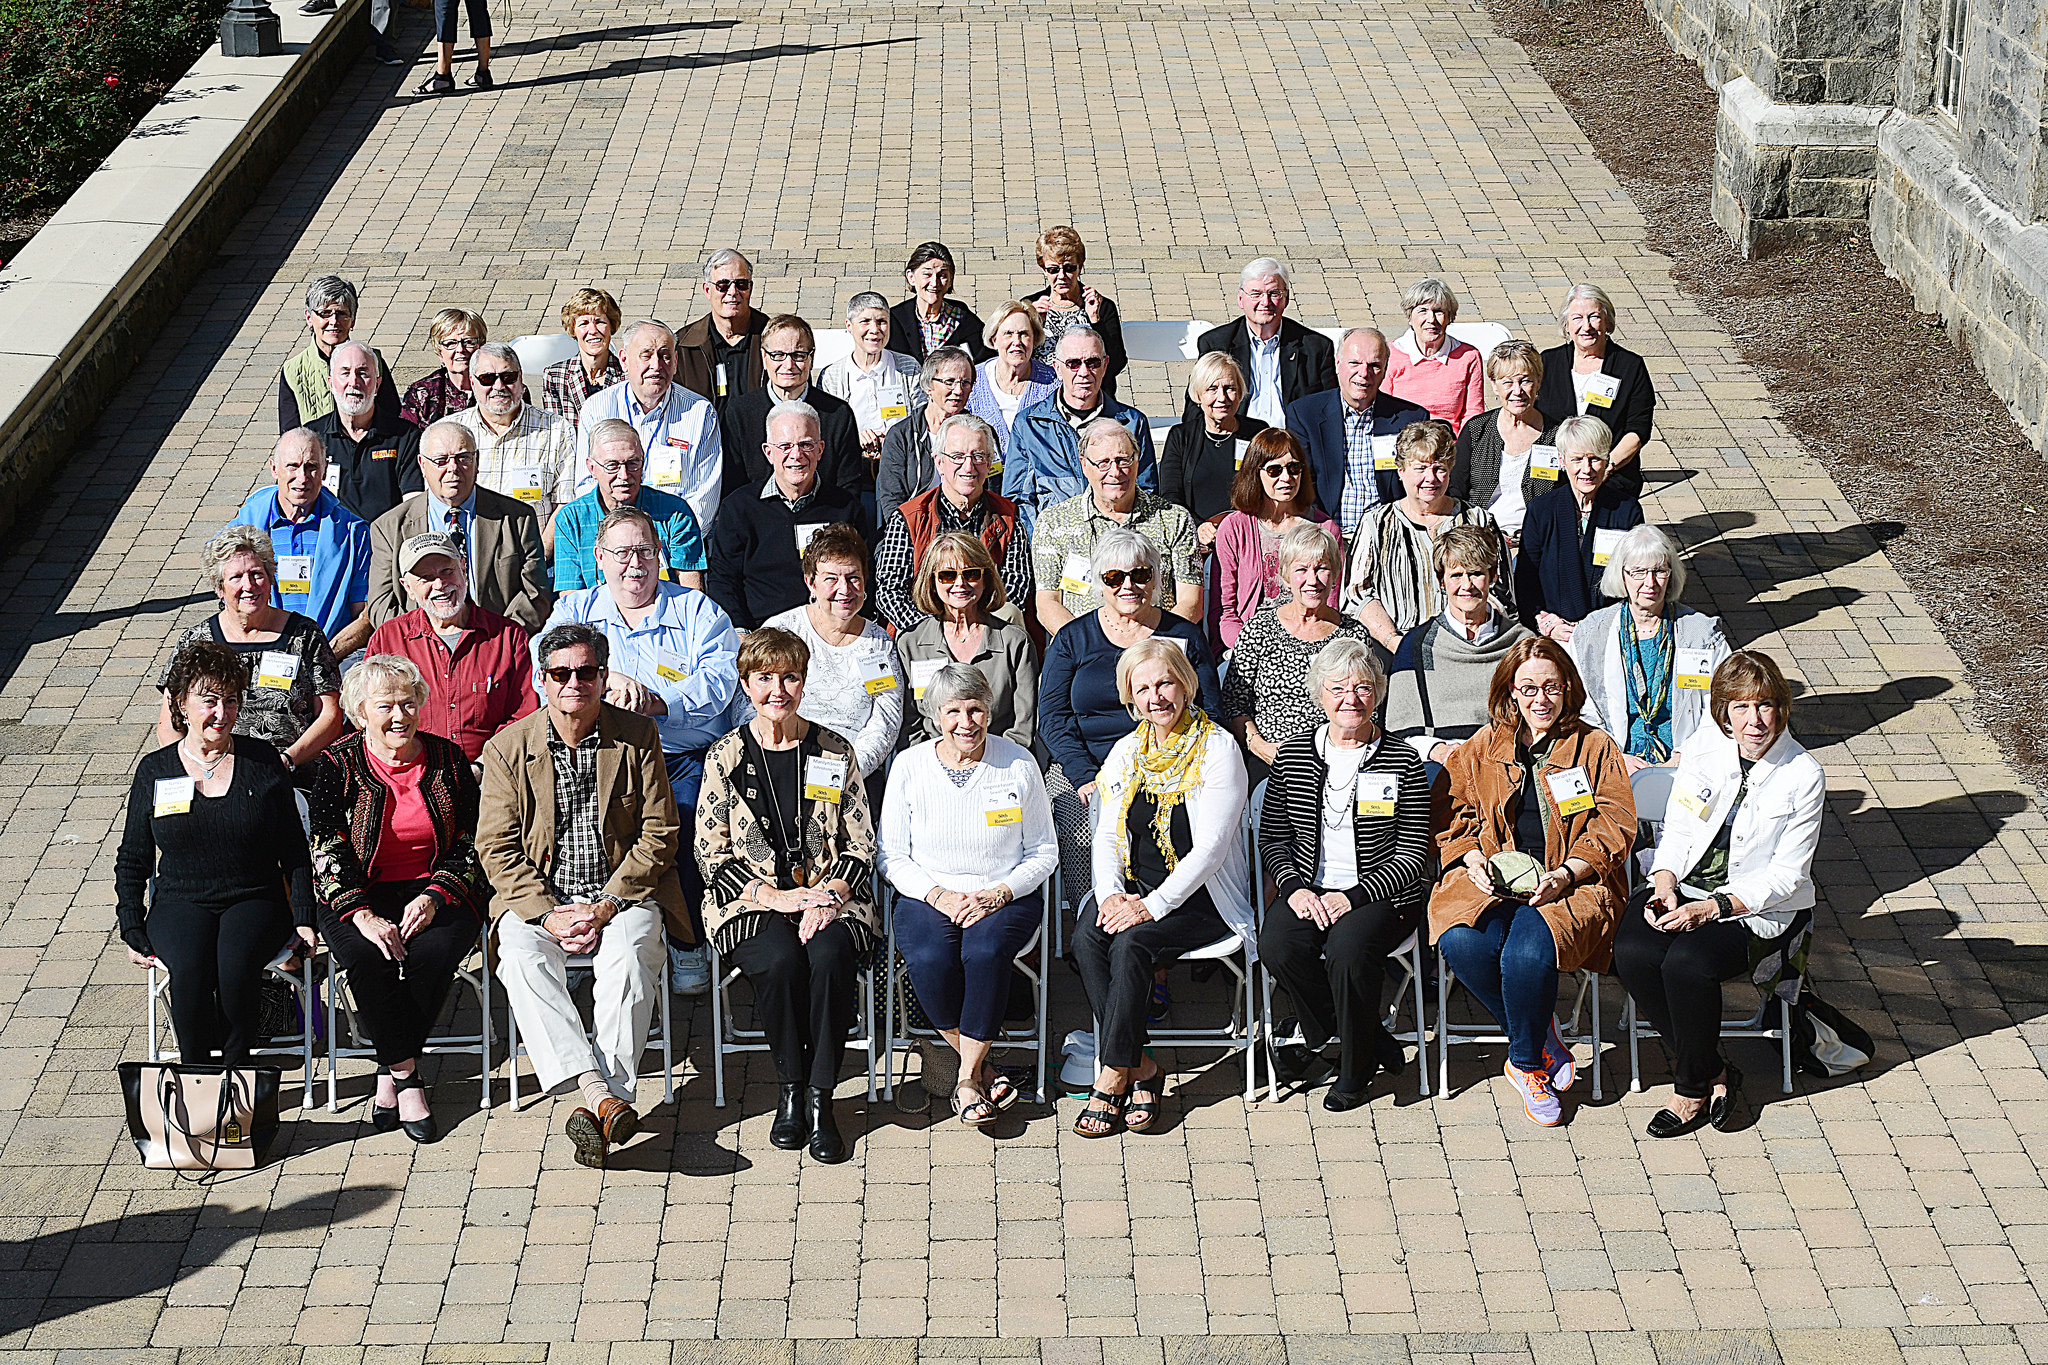 Reunion Photo for the Class of 1967